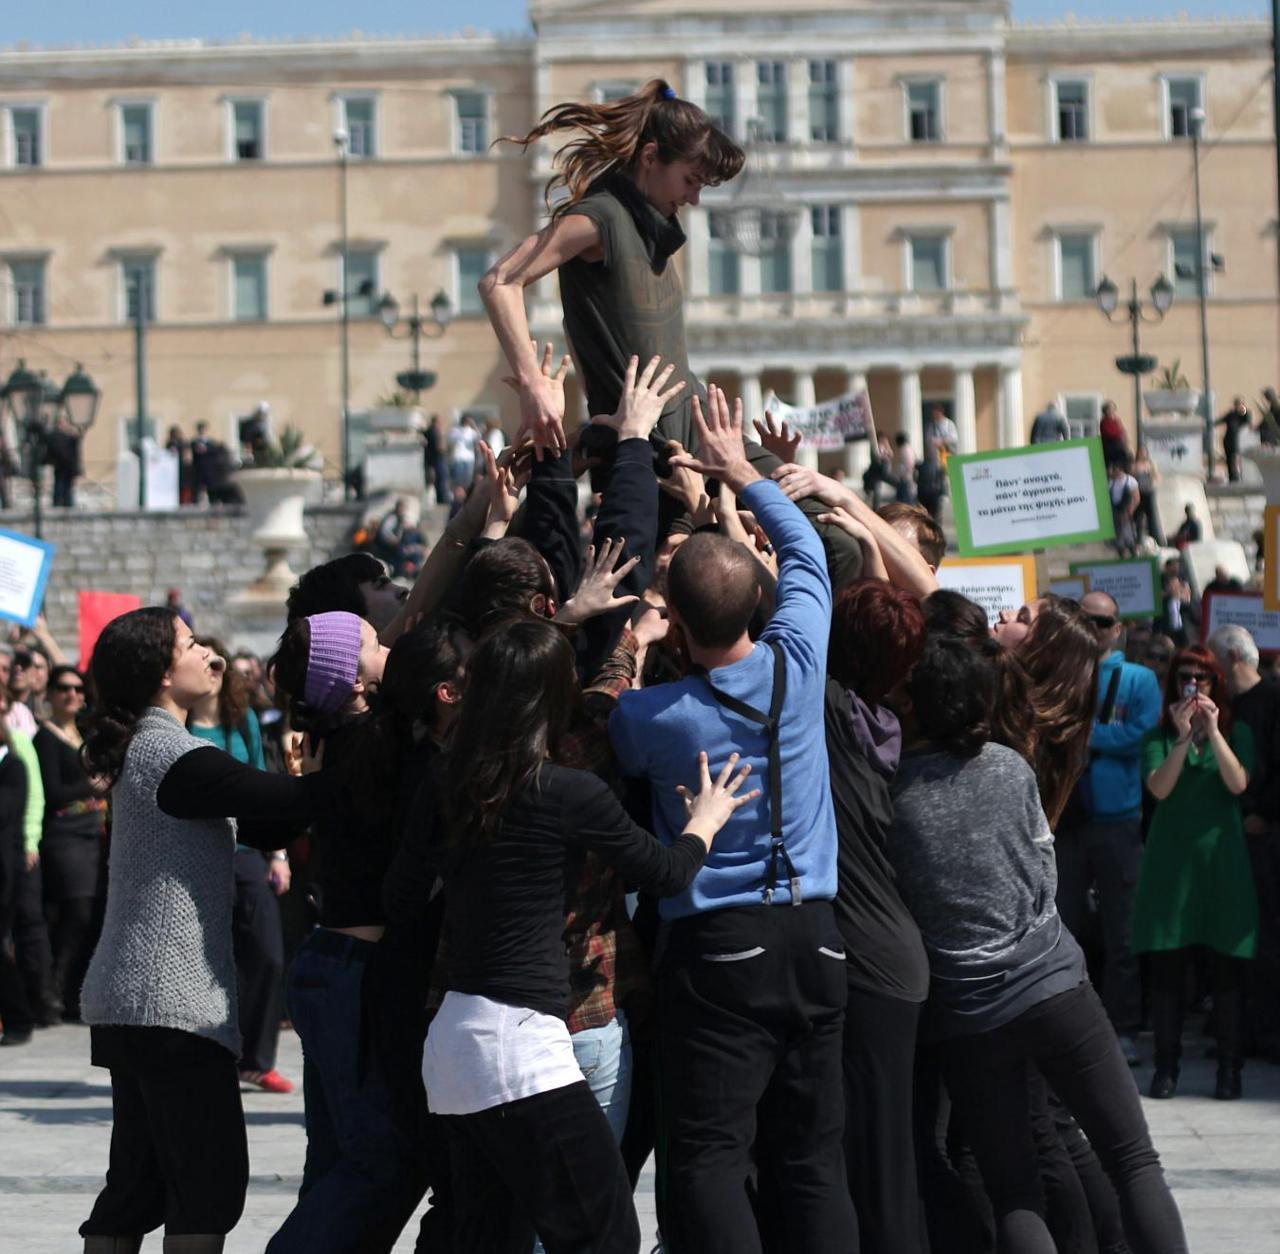 Dancers perform in front of the Greek Parliament during a protest by Greek poets, in central Athens on Wednesday, March 21, 2012. The anti-austerity protest was held on World Poetry Day. (Petros Giannakouris)